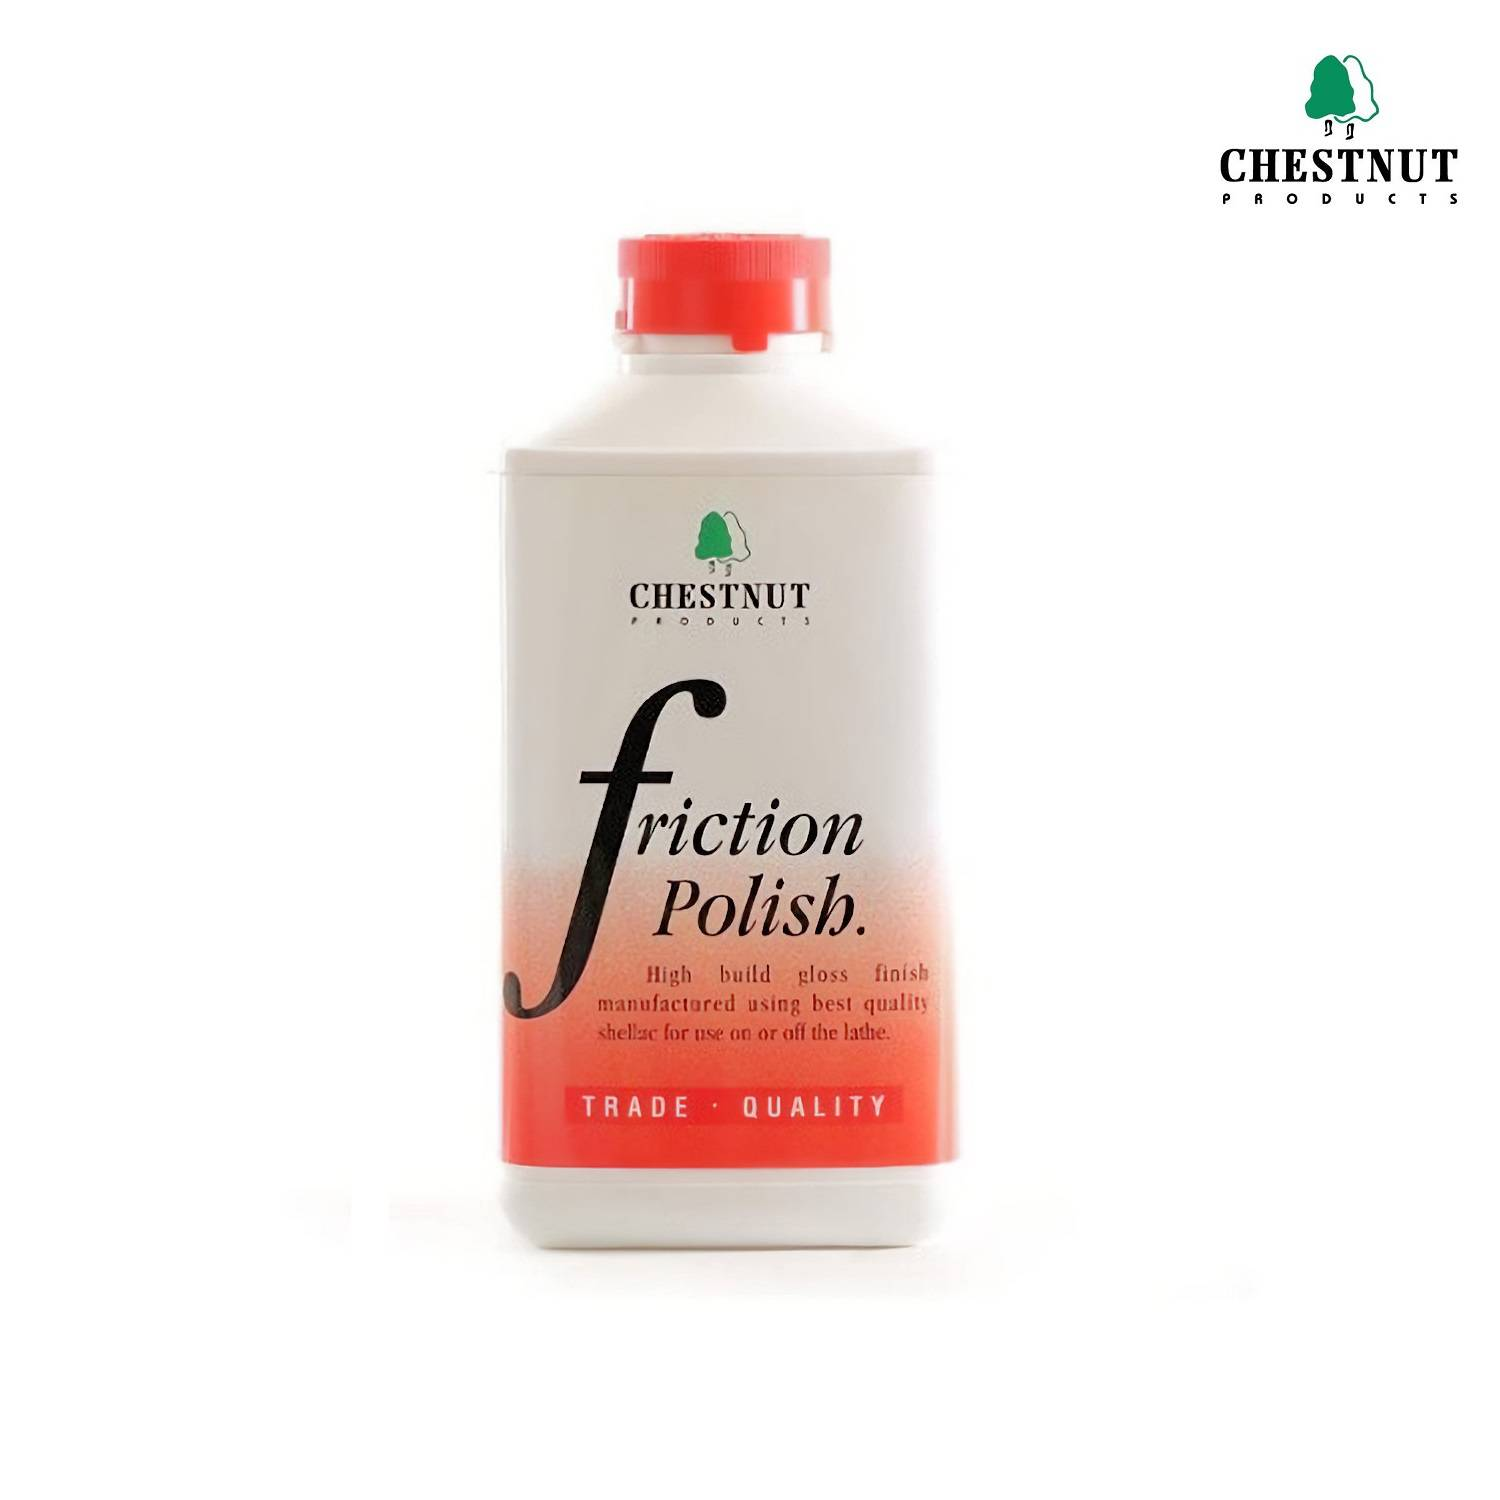 friction-polish-Chestnut.jpg